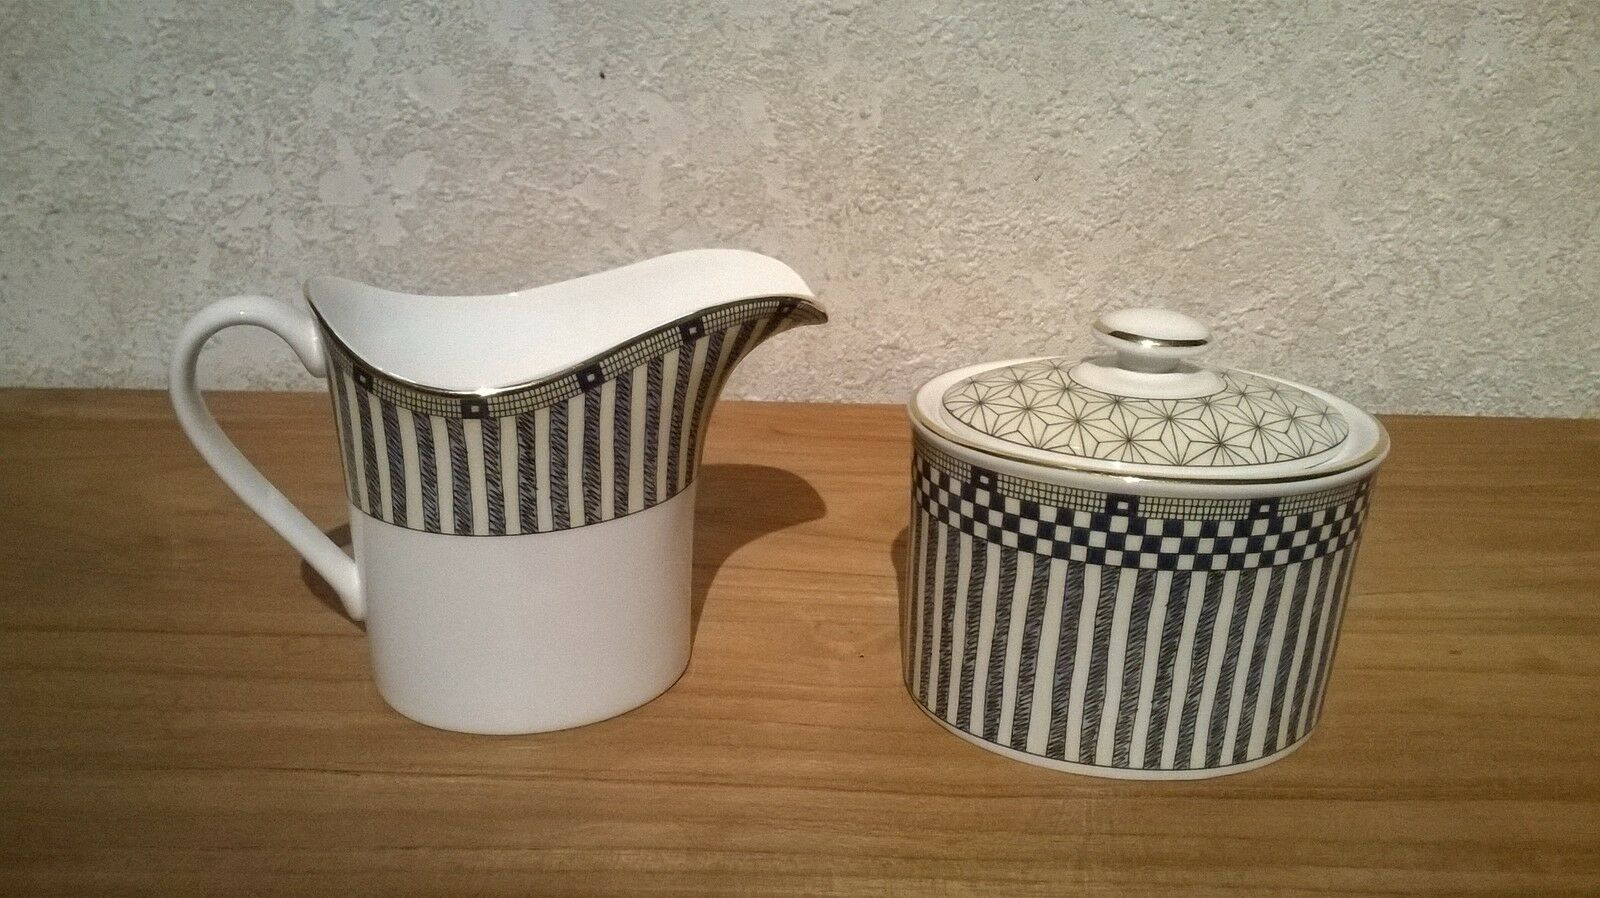 Wedgwood NEW Samurai 5017090 Set Sucrier + Crémier Sugar bowl + milk jug